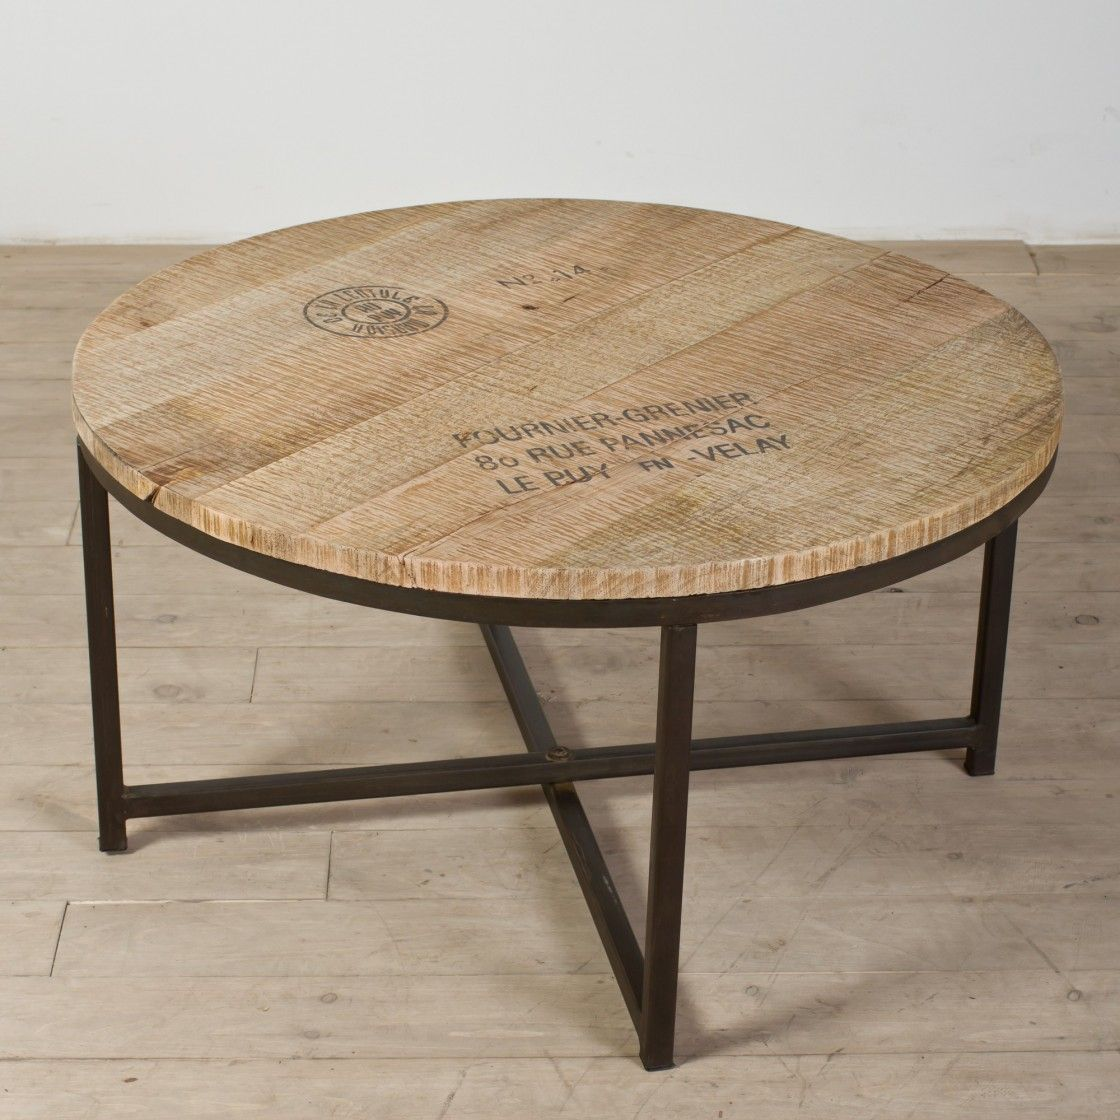 How to make a sofa table out of floor boards - Easy Unpolished Ikea Round Wooden Board Coffee Table Cheap Modern With Black Iron Pedestal On Hardwood